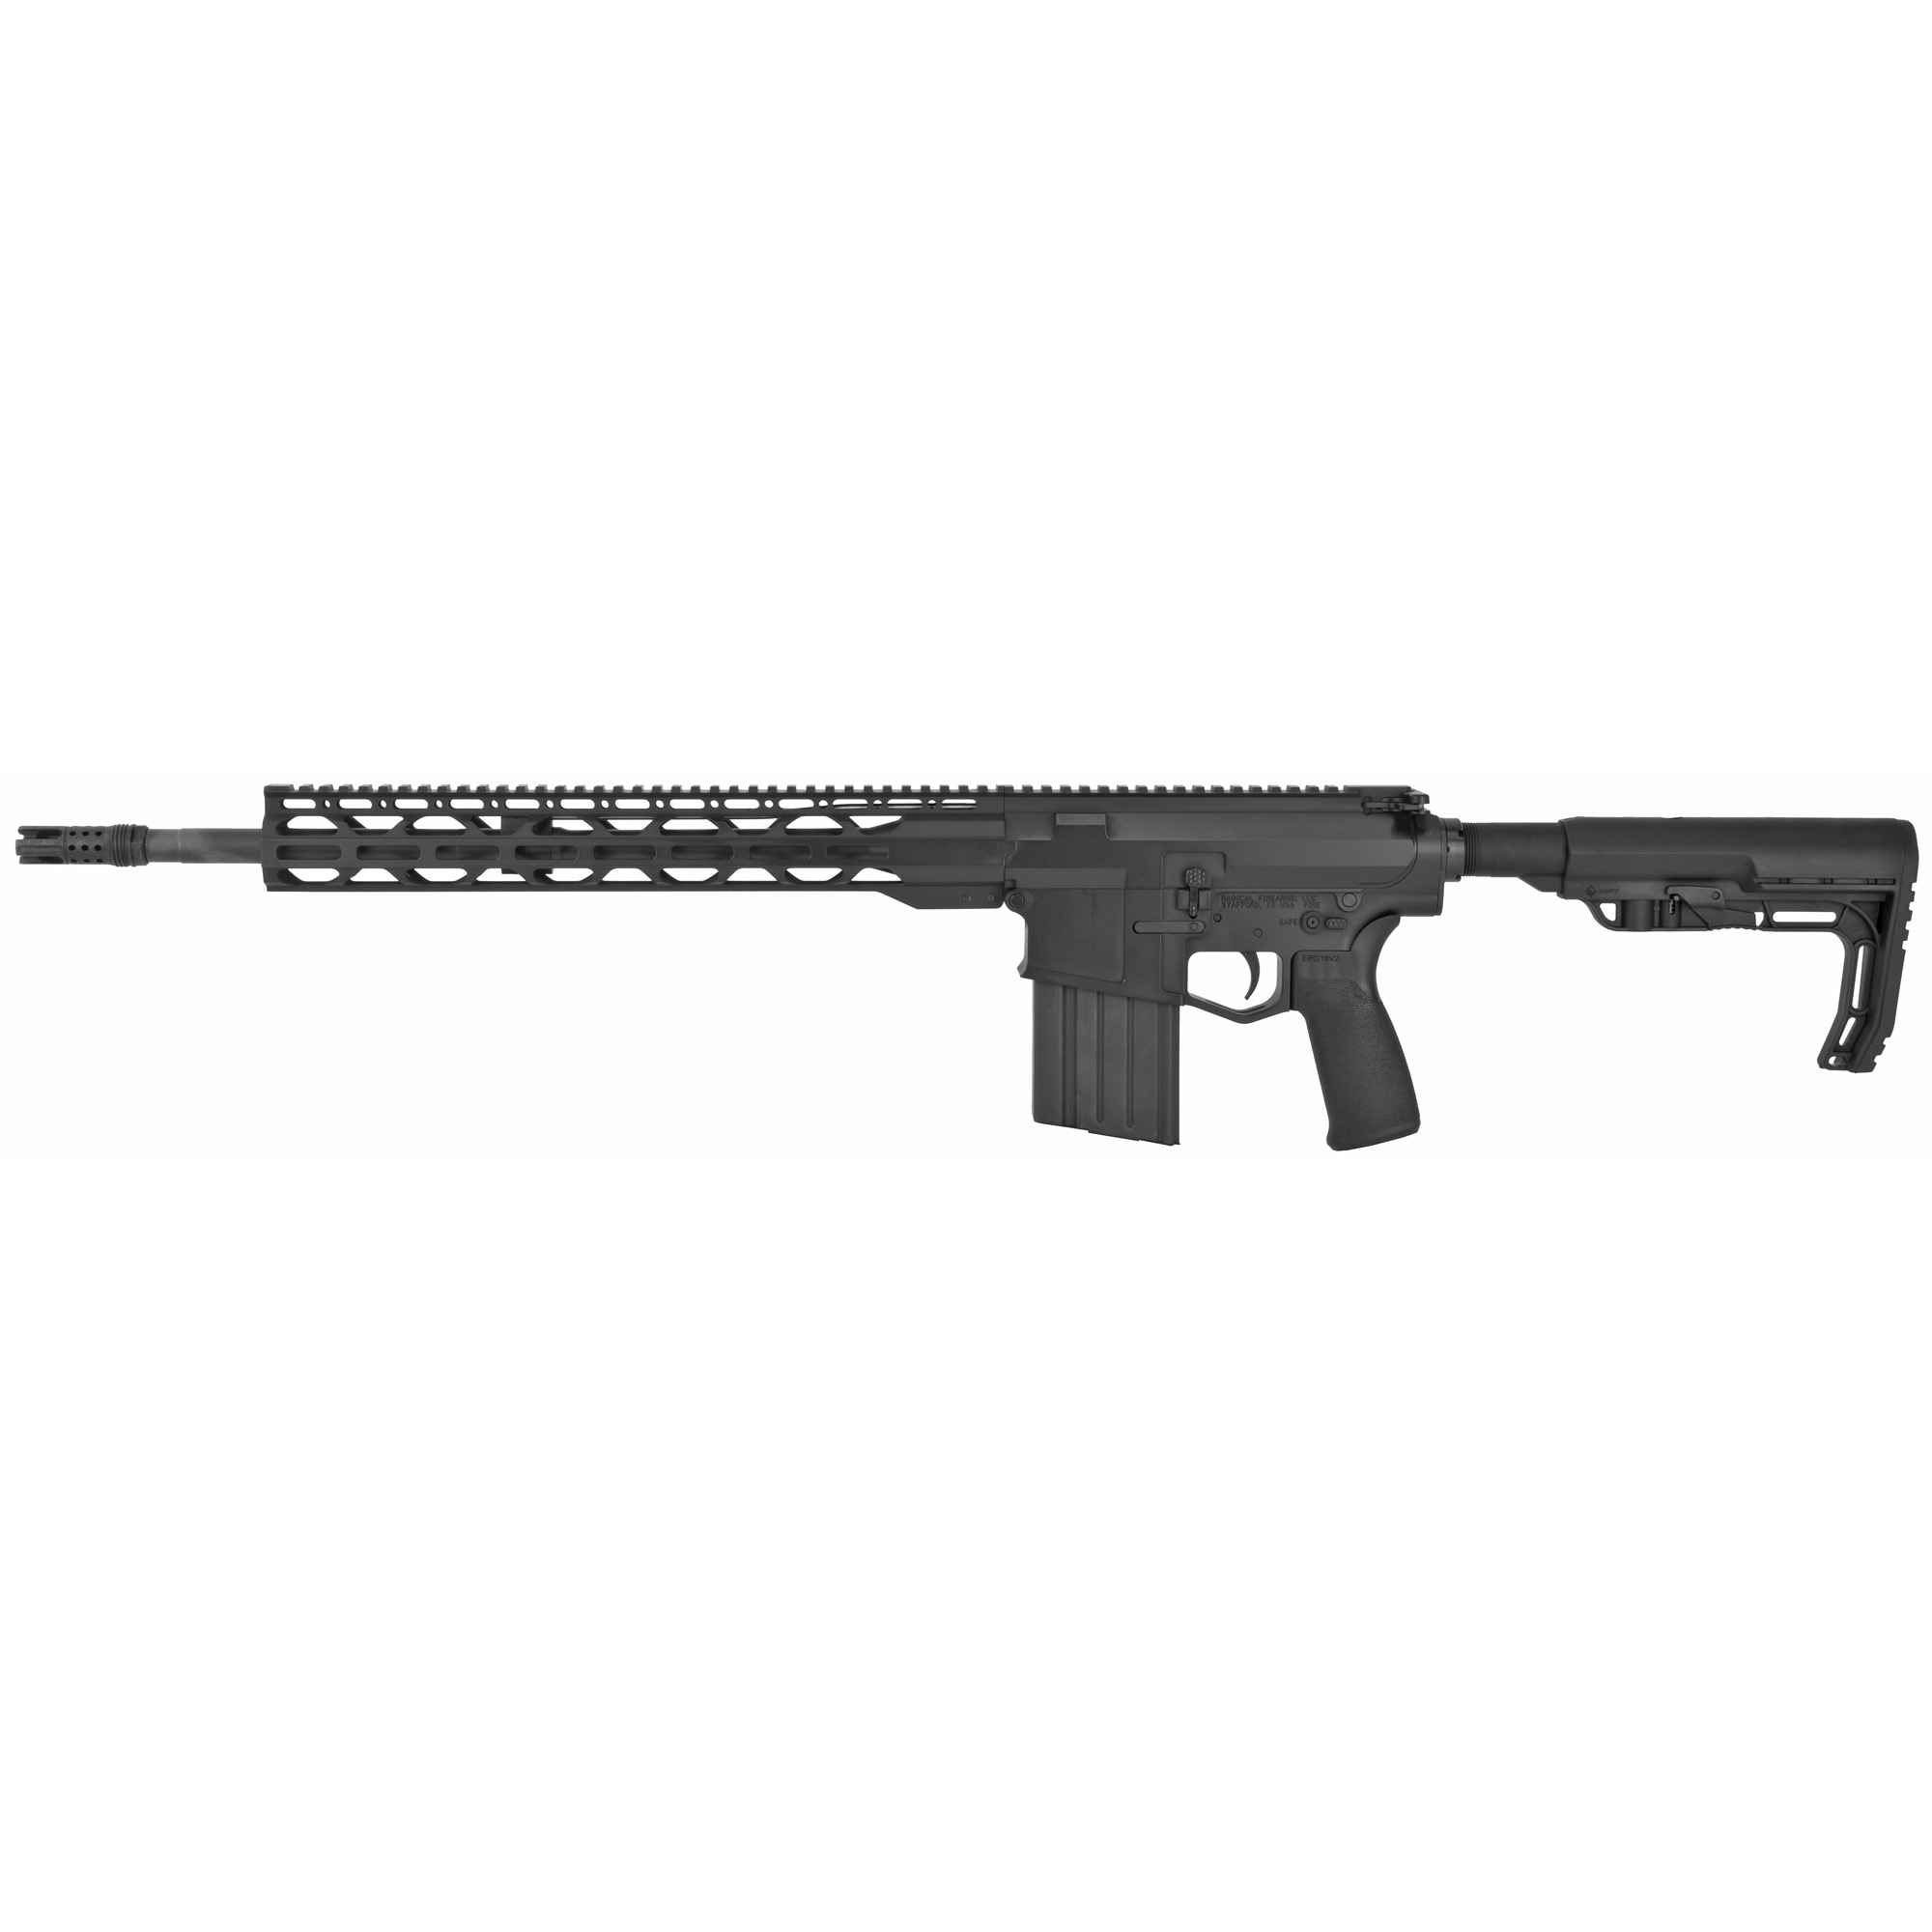 """The Radical Firearms RF-10 uses a match grade barrel along with a free float rail system for increased accuracy"""" keeping your hands cool"""" and giving you plenty of room for accessories. Regardless if it's your first or fiftieth"""" a Radical Firearms rifle will not disappoint!"""